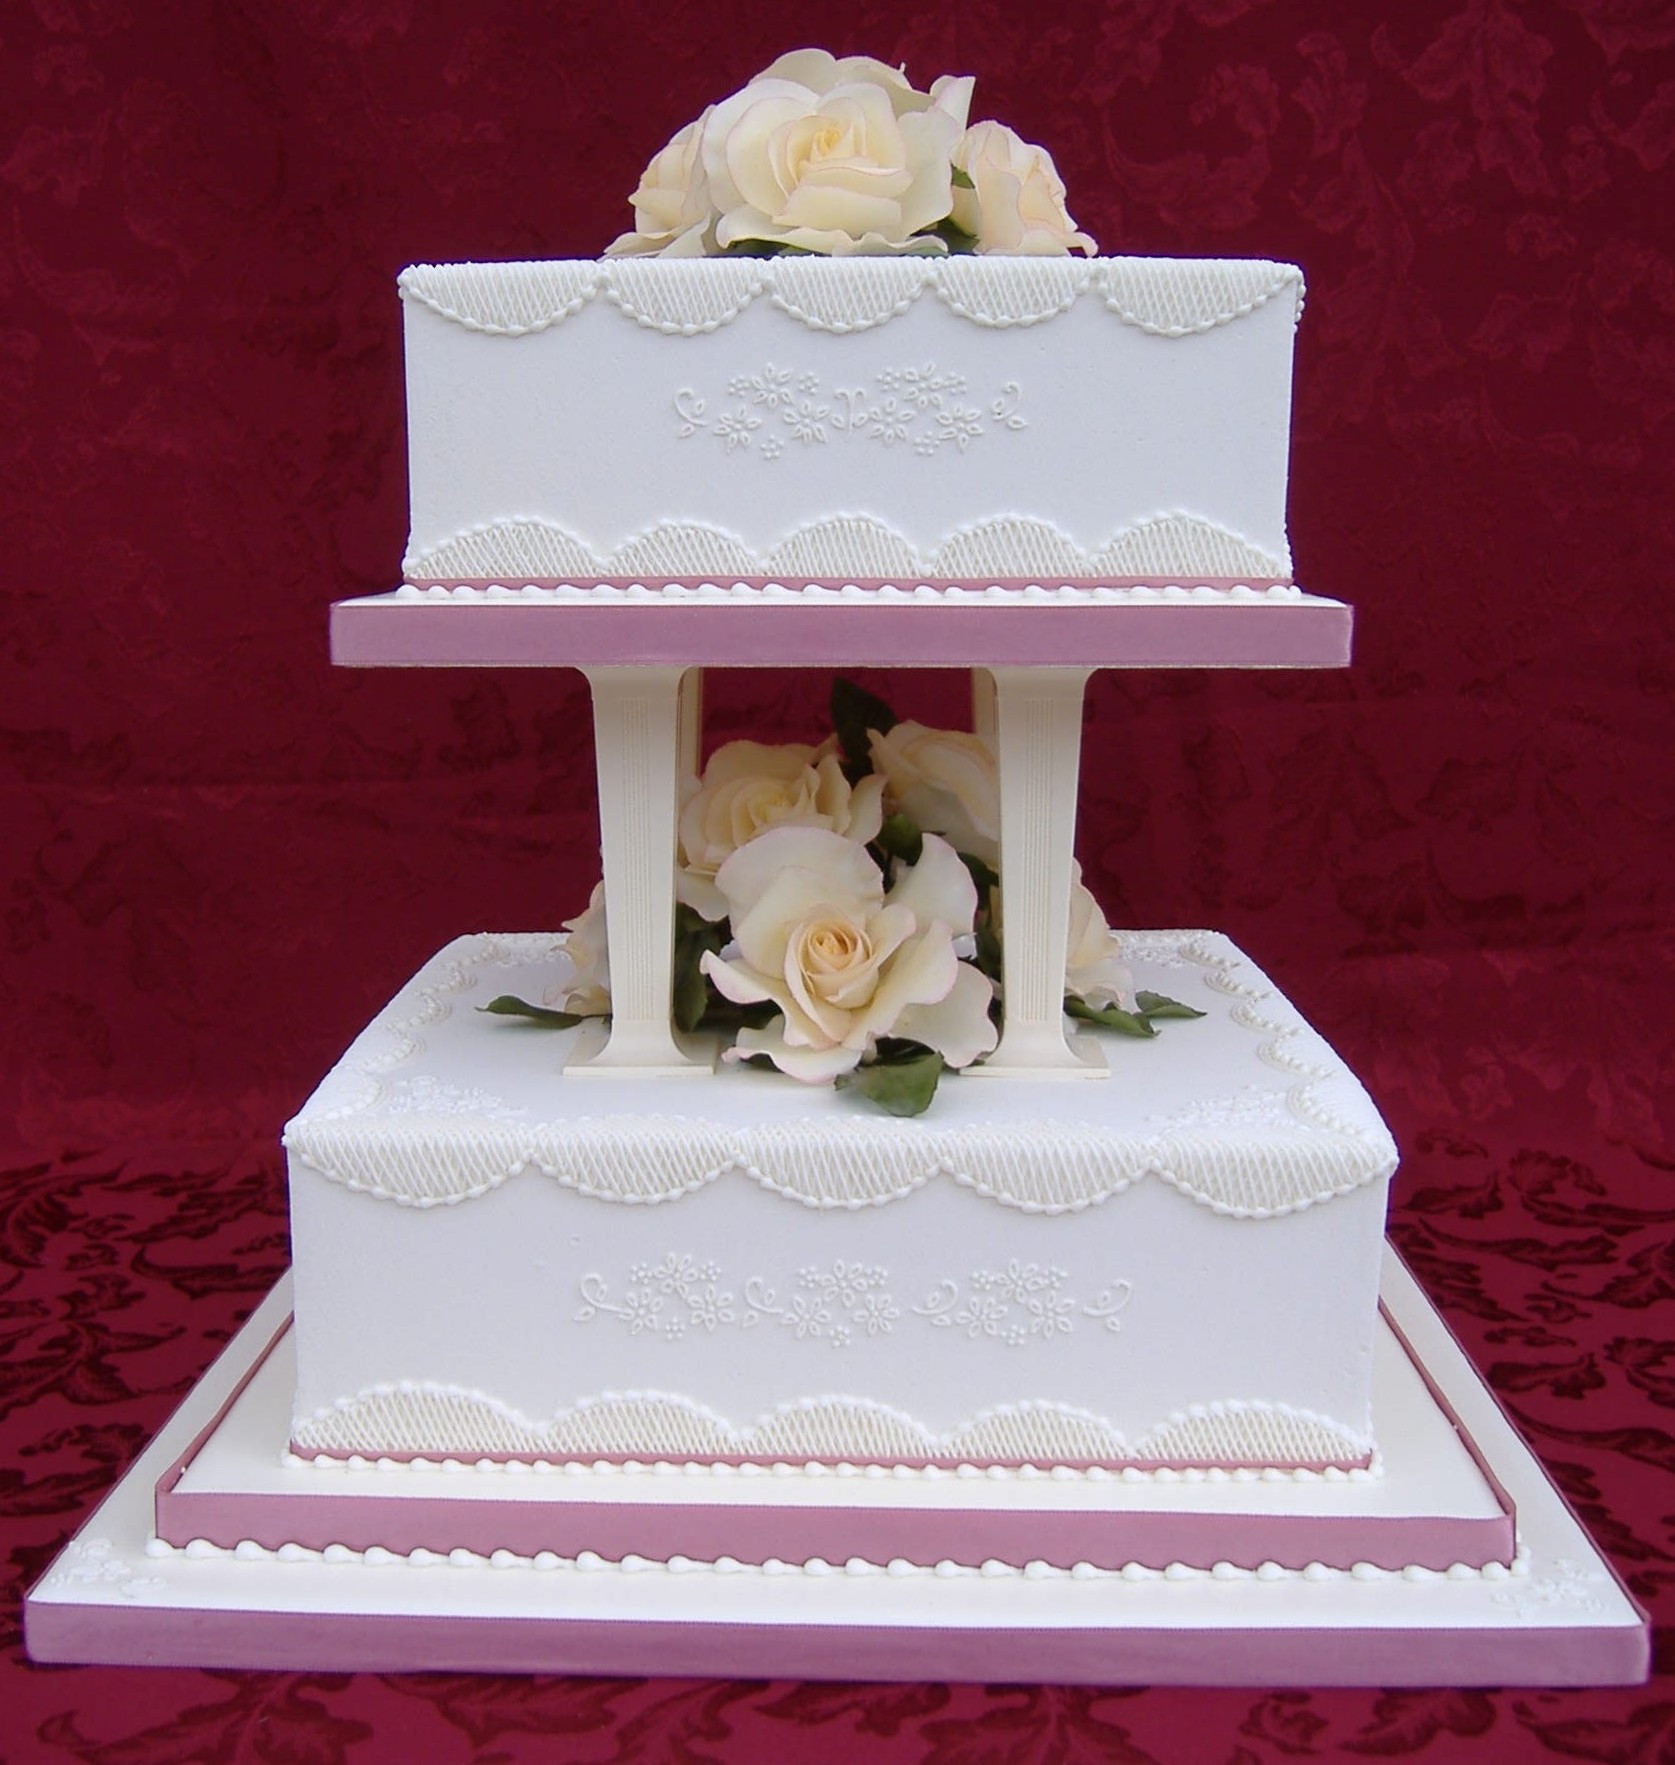 Royal Icing Wedding Cakes  Galleries royal iced wedding cakes Donna Jane Cakes